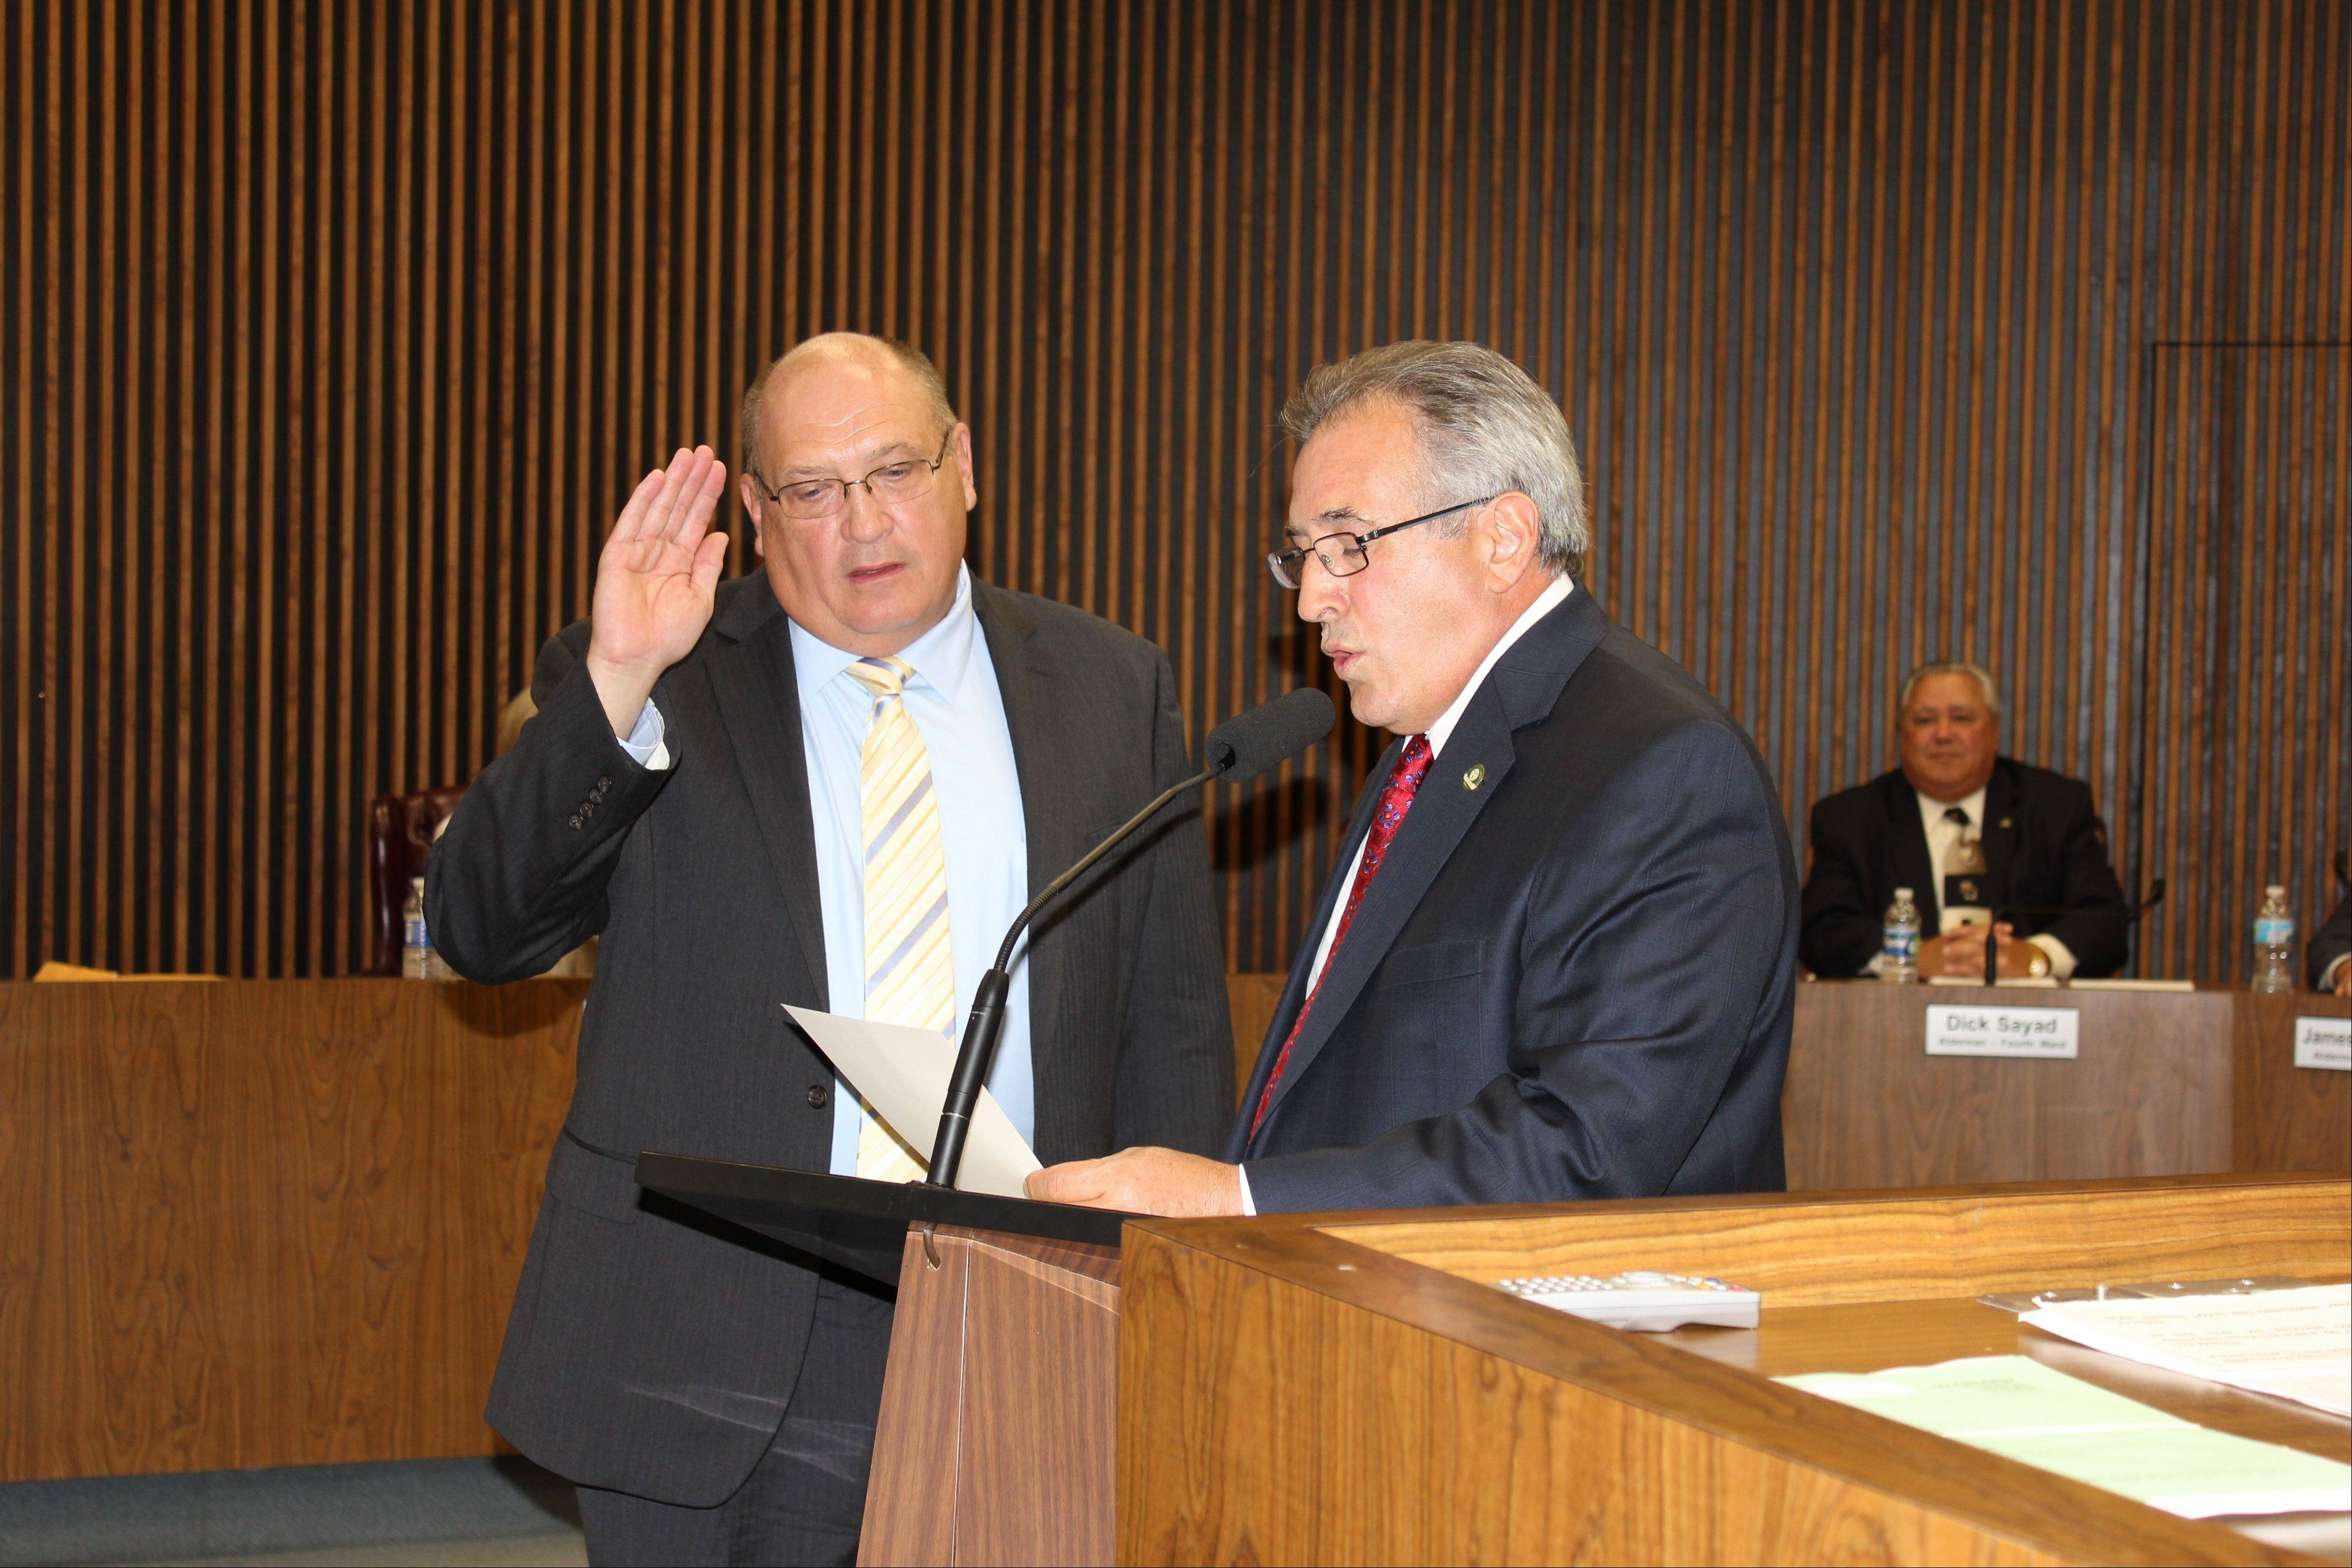 Des Plaines Mayor Marty Moylan, right, administers the oath of office to new Police Chief William Kushner at Tuesday�s city council meeting.